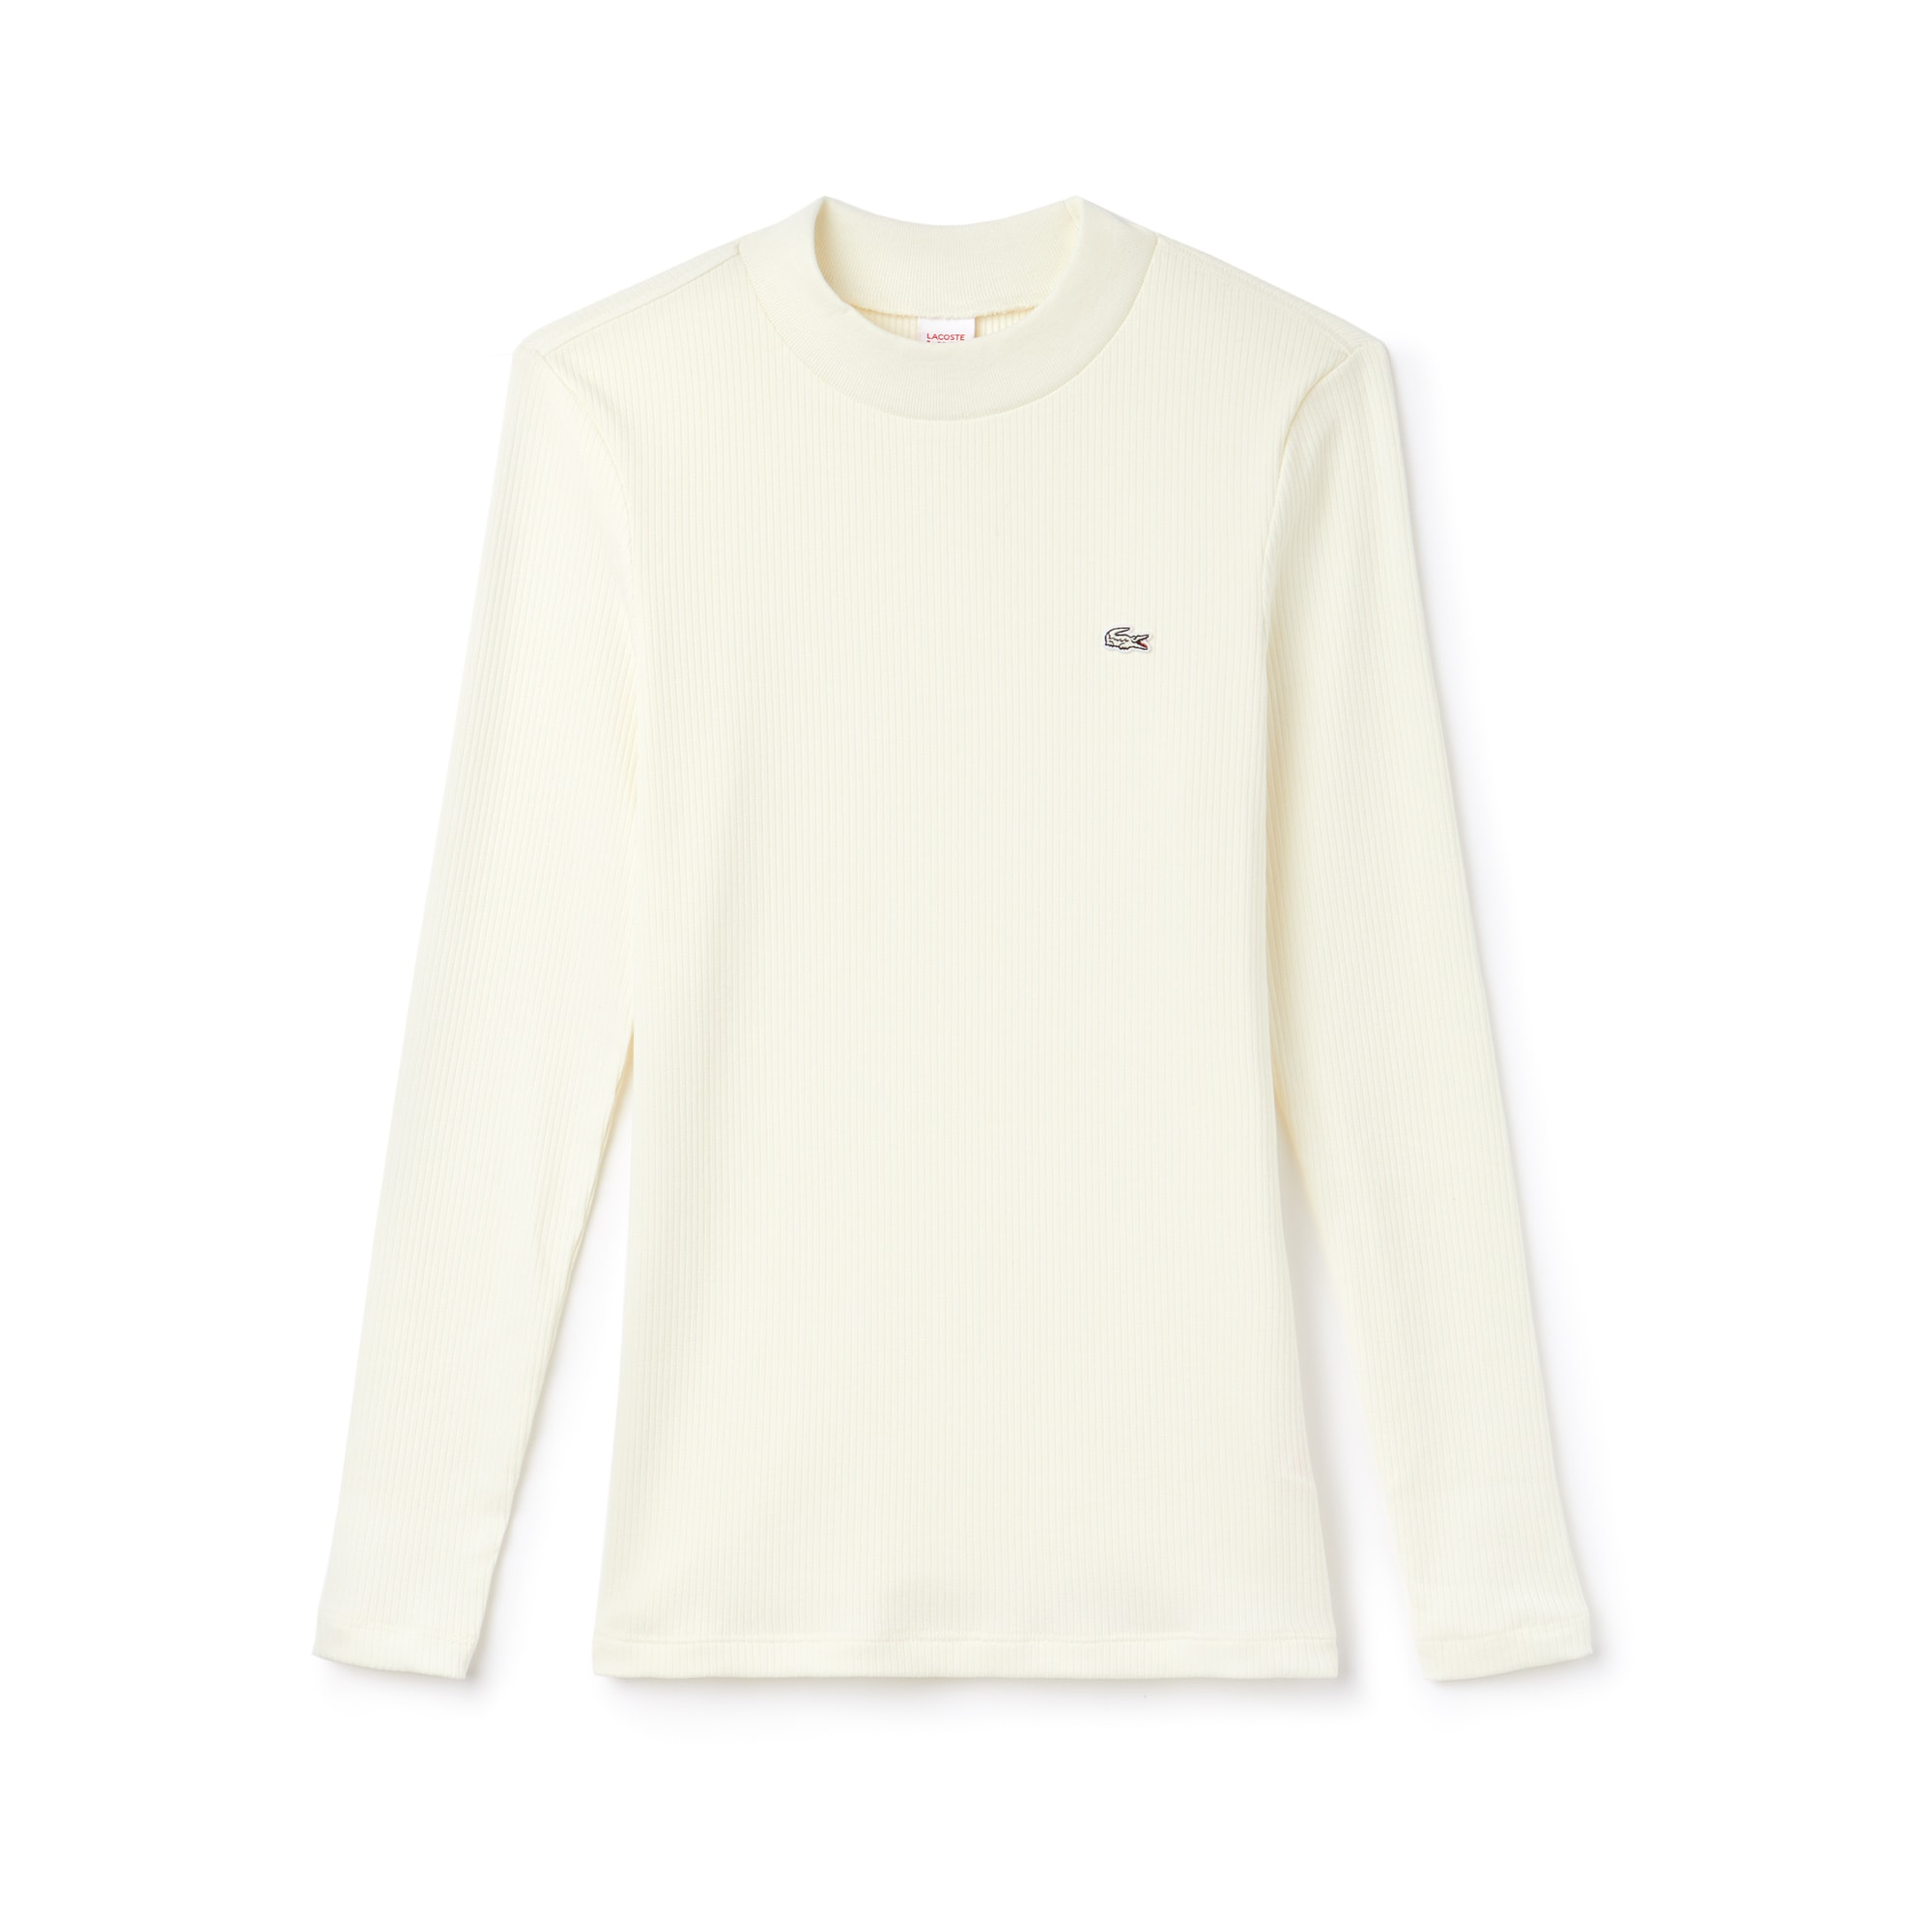 Women's Lacoste LIVE Stand-Up Collar Ribbed Cotton T-shirt